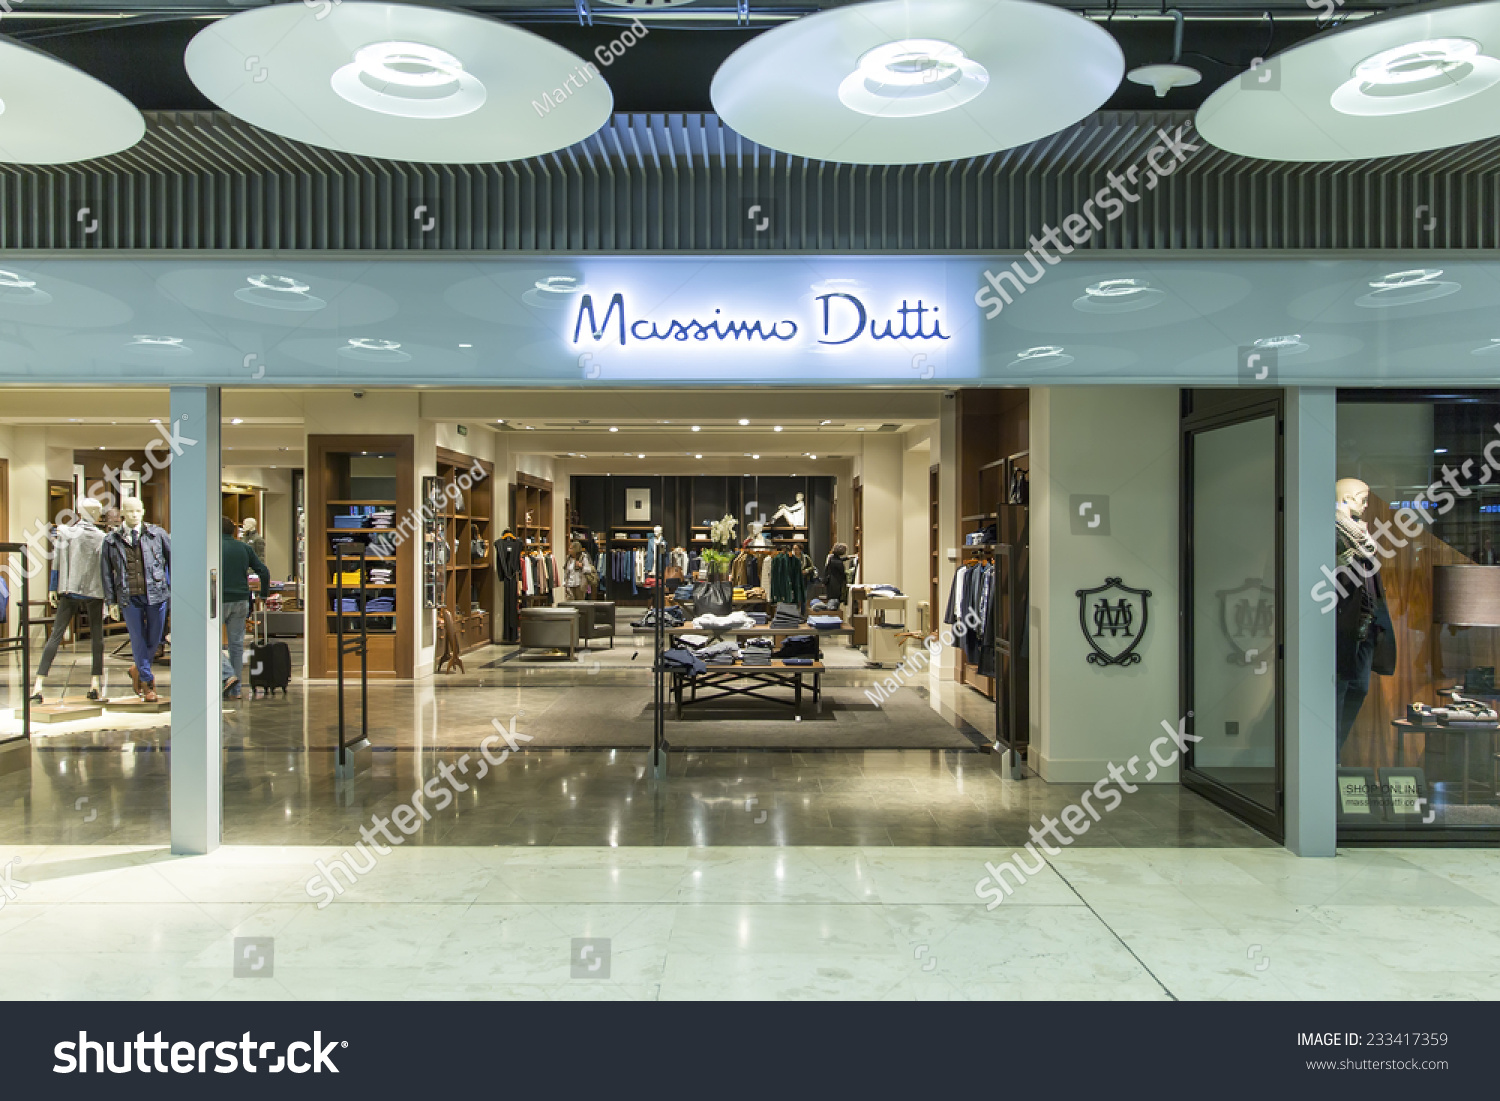 madrid spain november 14 2014 a massimo dutti fashion store founded in 1985 it was. Black Bedroom Furniture Sets. Home Design Ideas